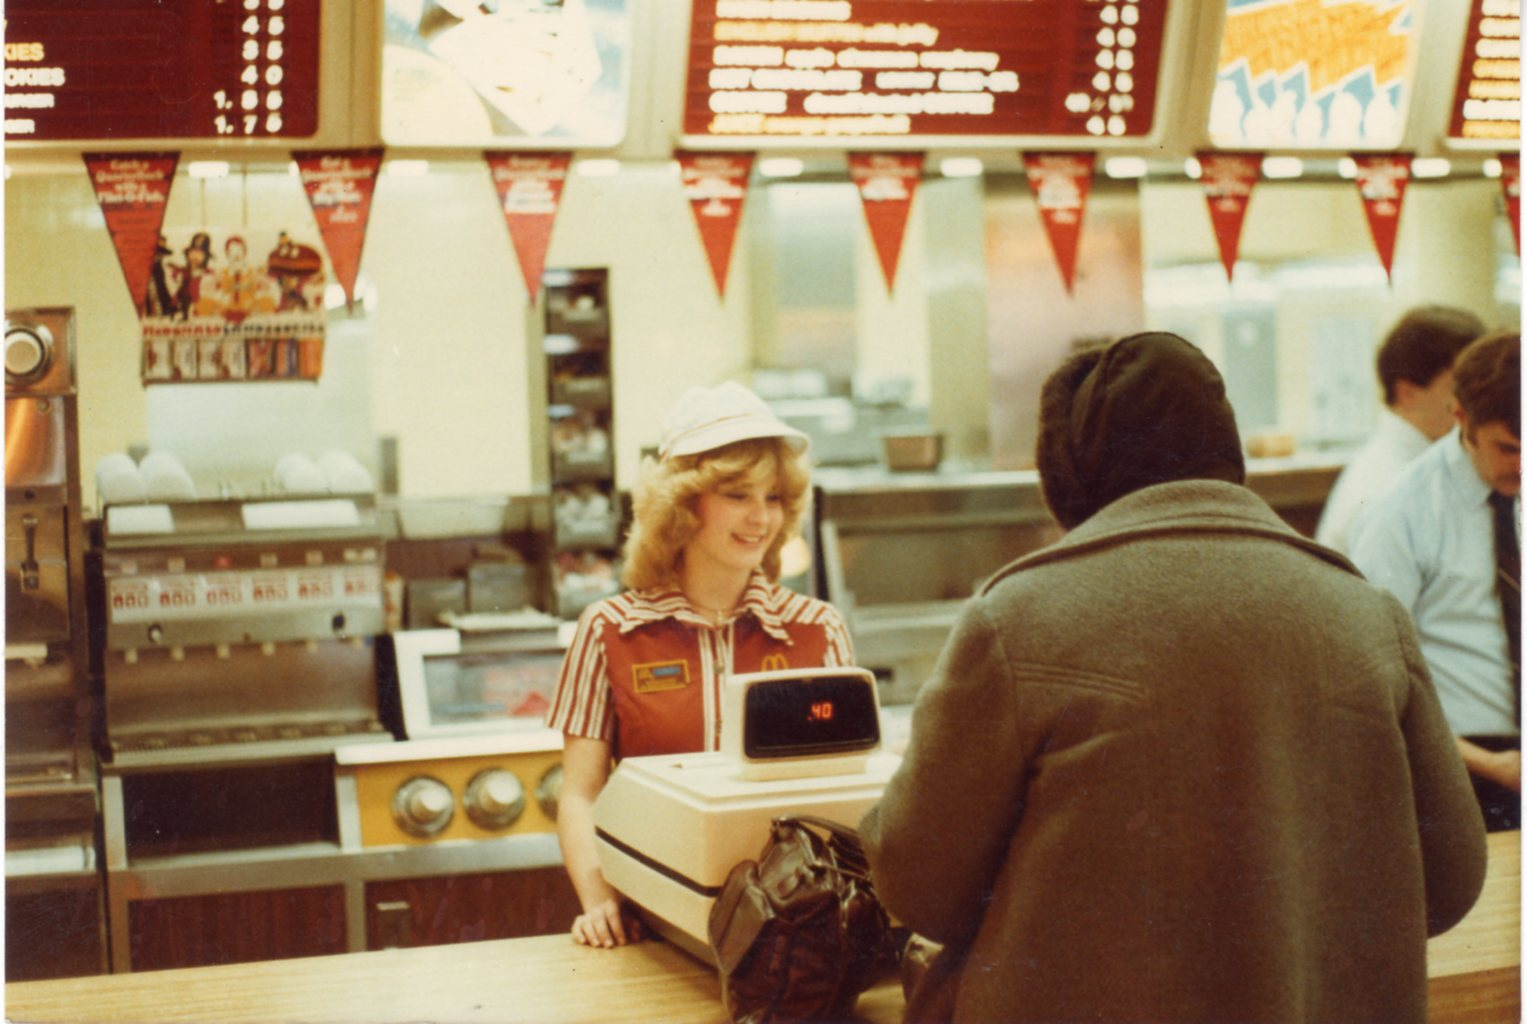 A cashier at a McDonald's is smiling and standing behind the counter and cash register taking a customer's order.